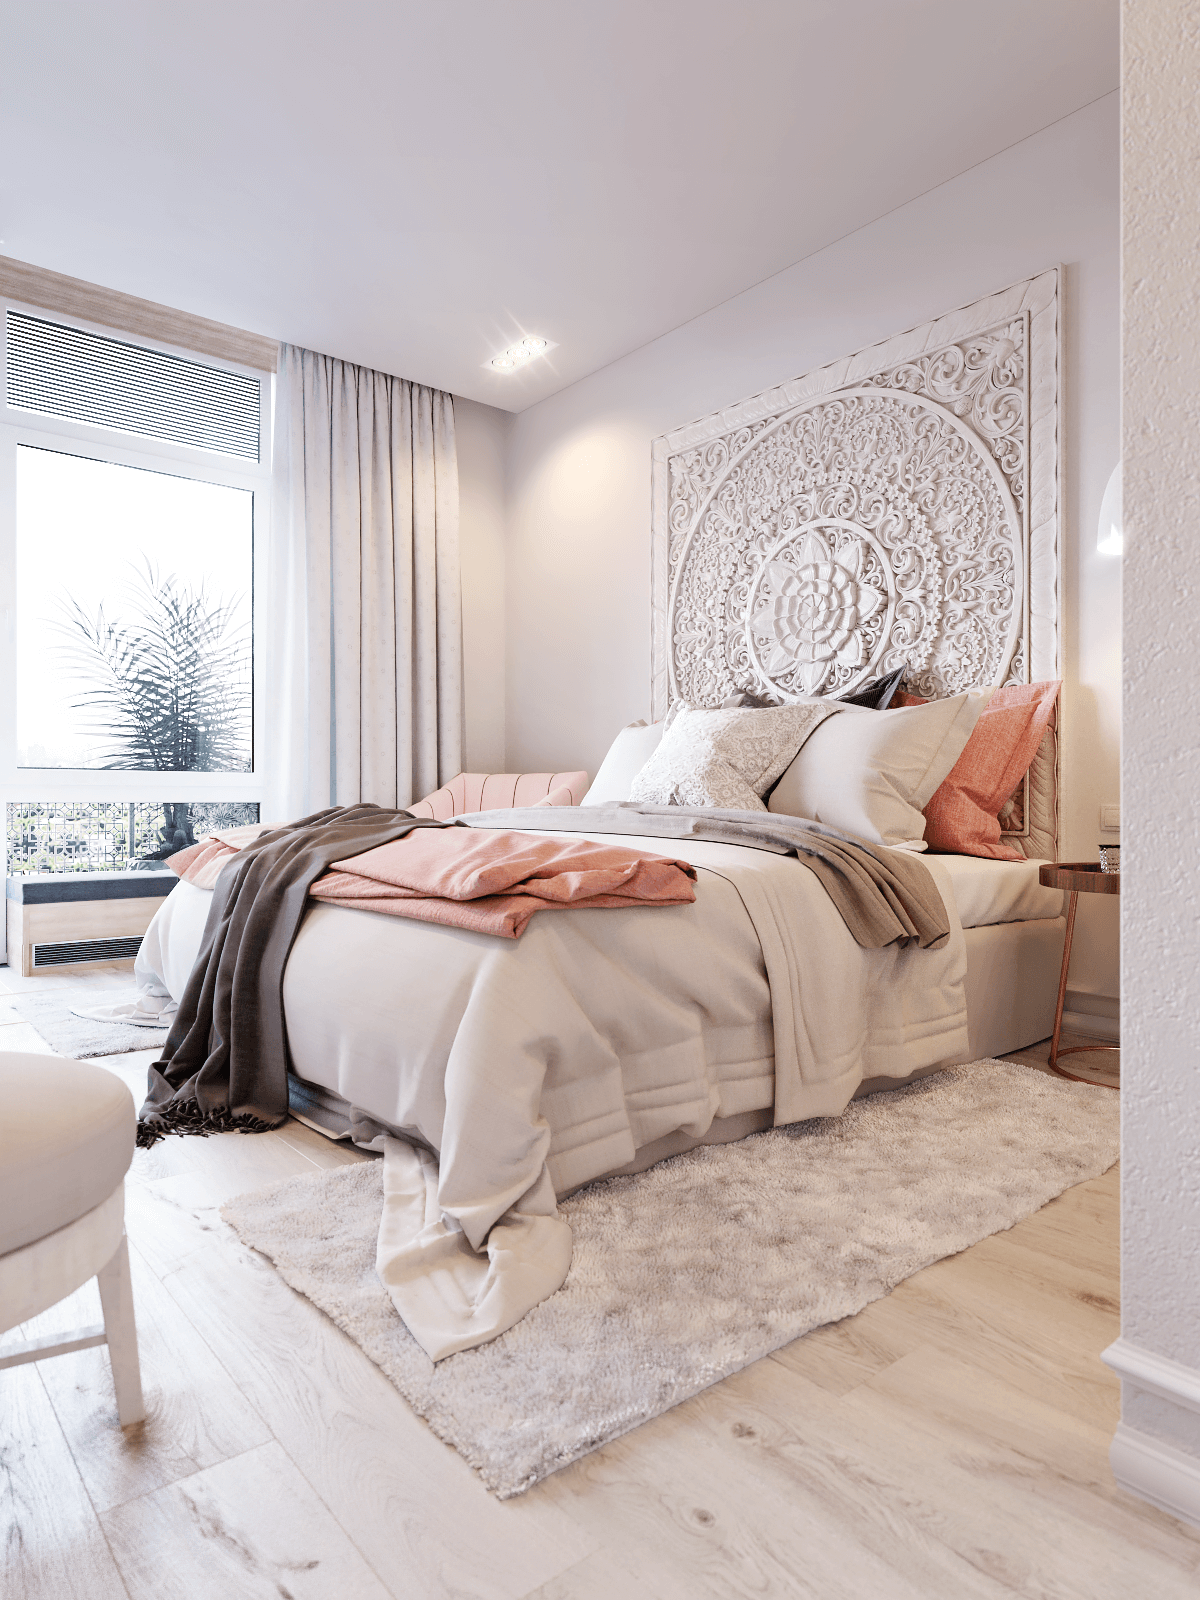 25+ Best Bedroom Wall Decor Ideas and Designs for 2020 on Room Decor  id=35219